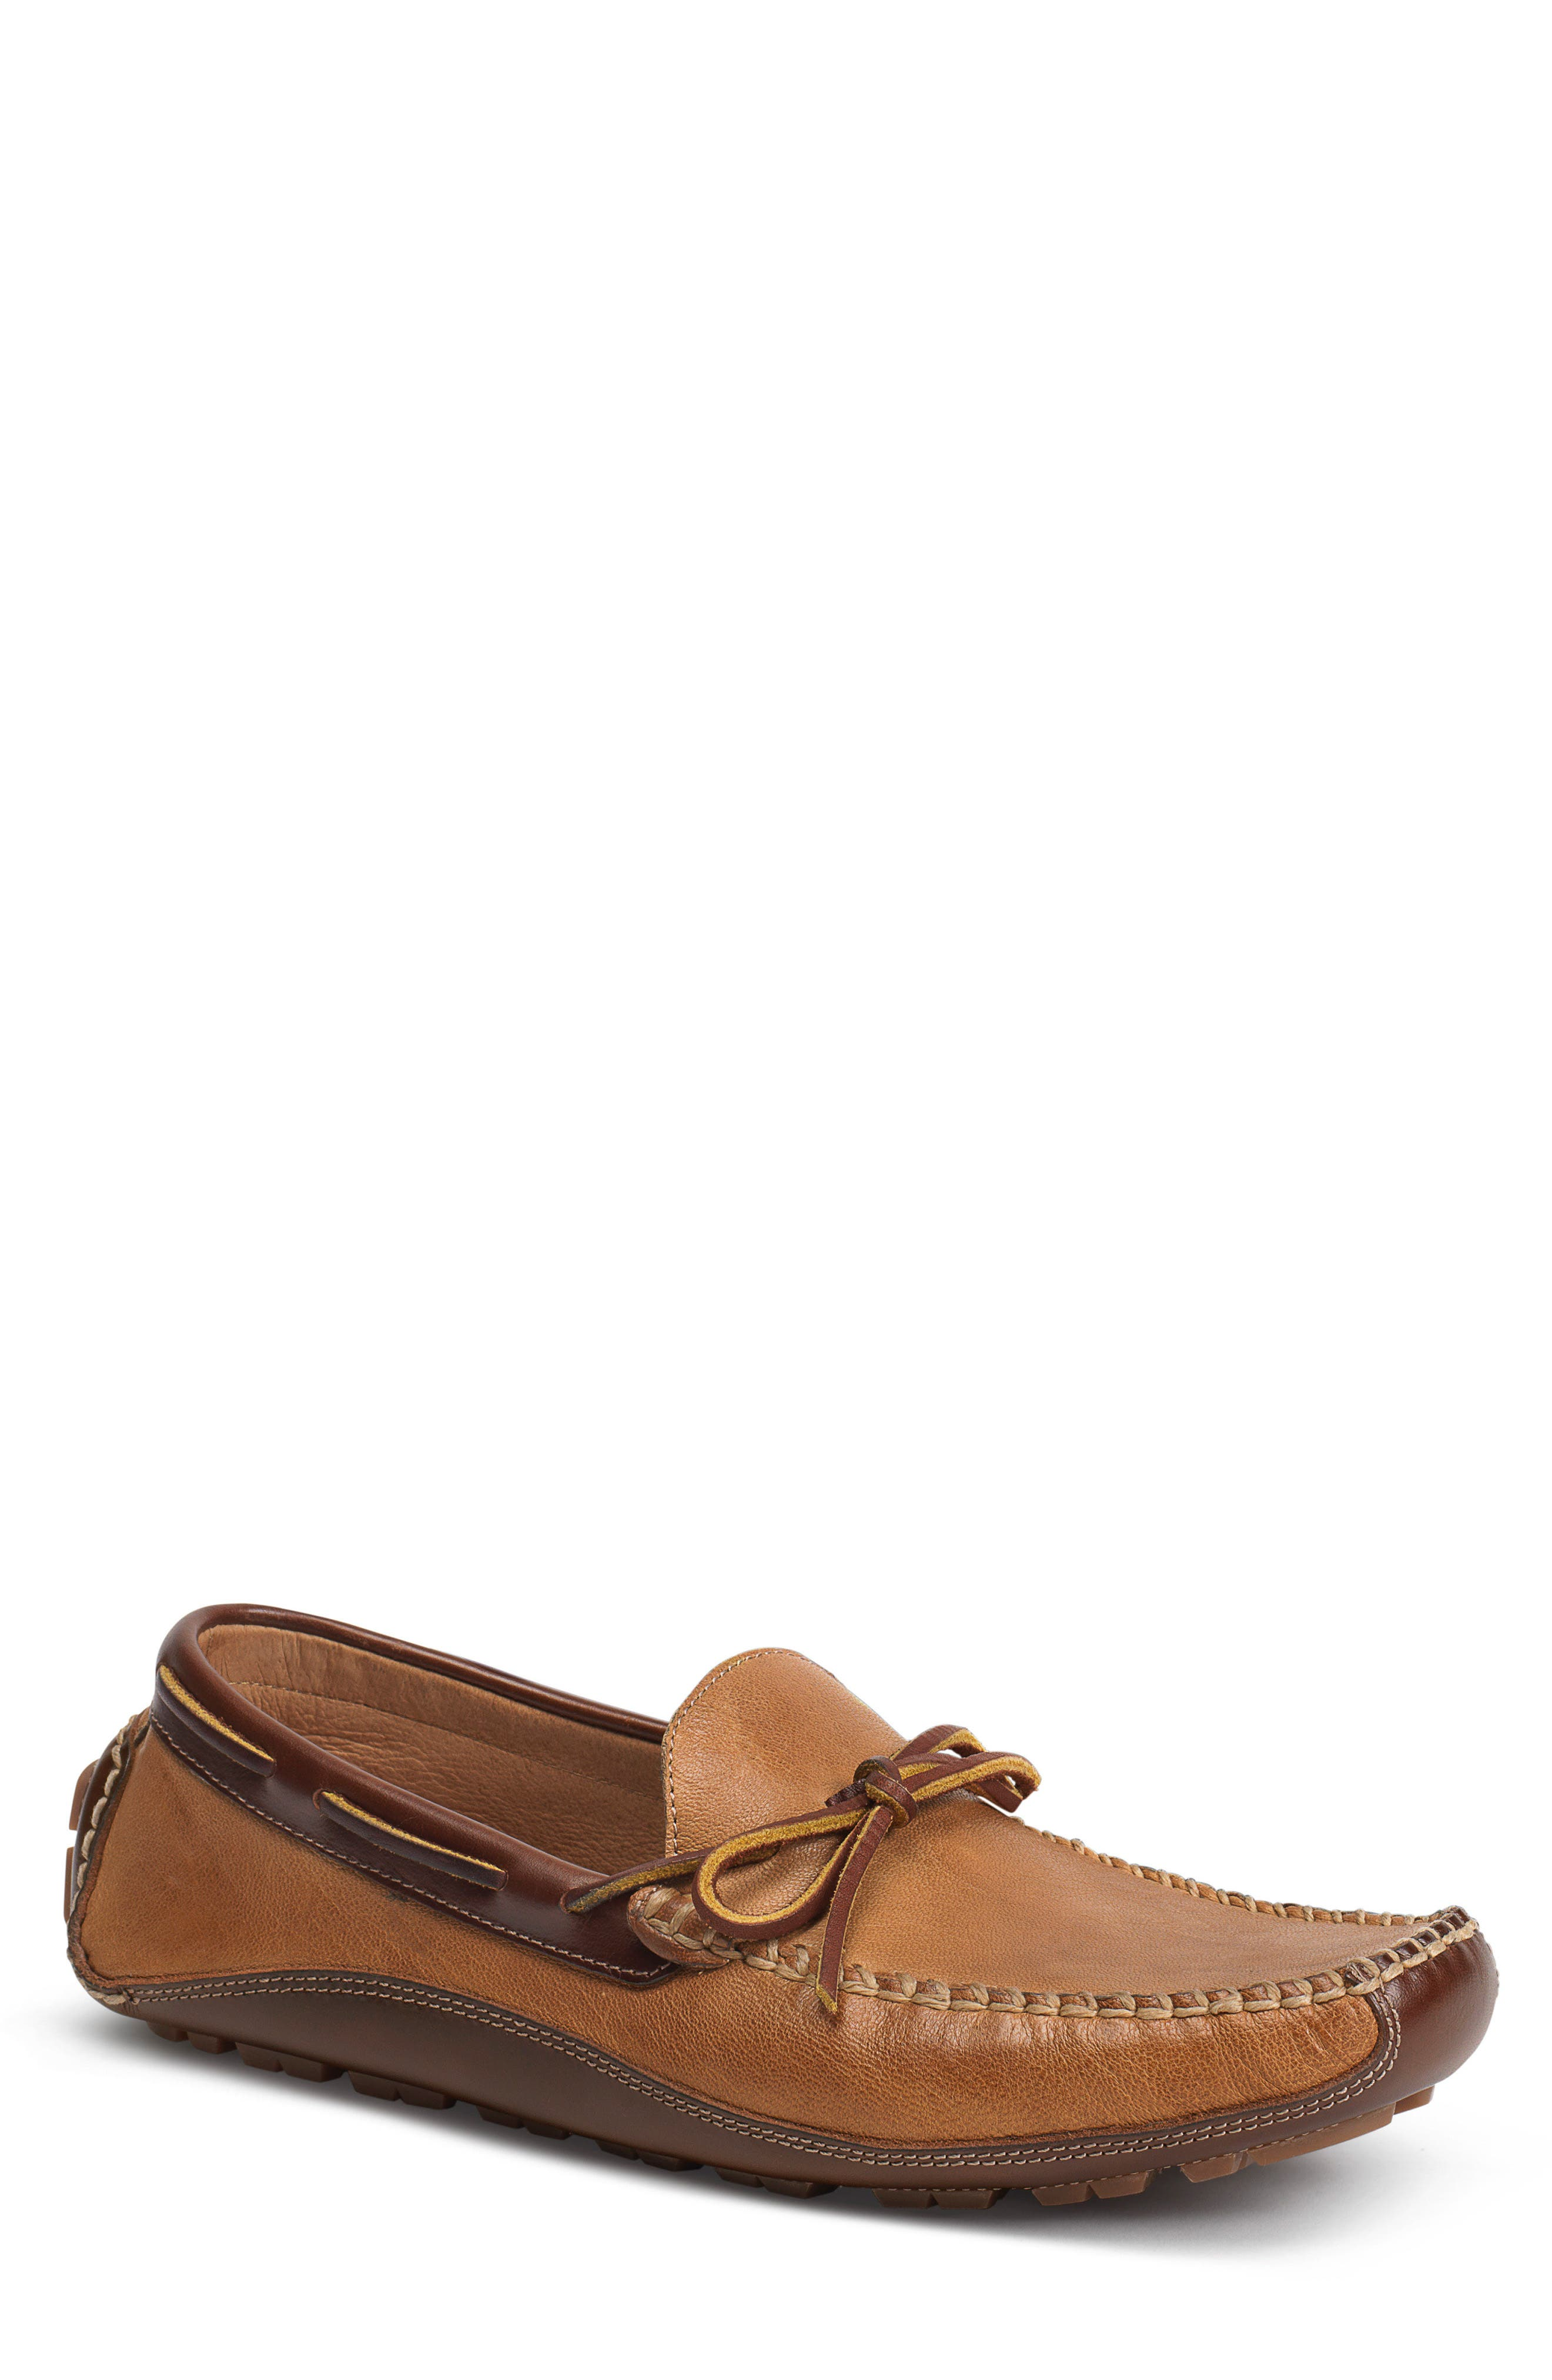 'Drake' Leather Driving Shoe,                         Main,                         color, Tan Leather